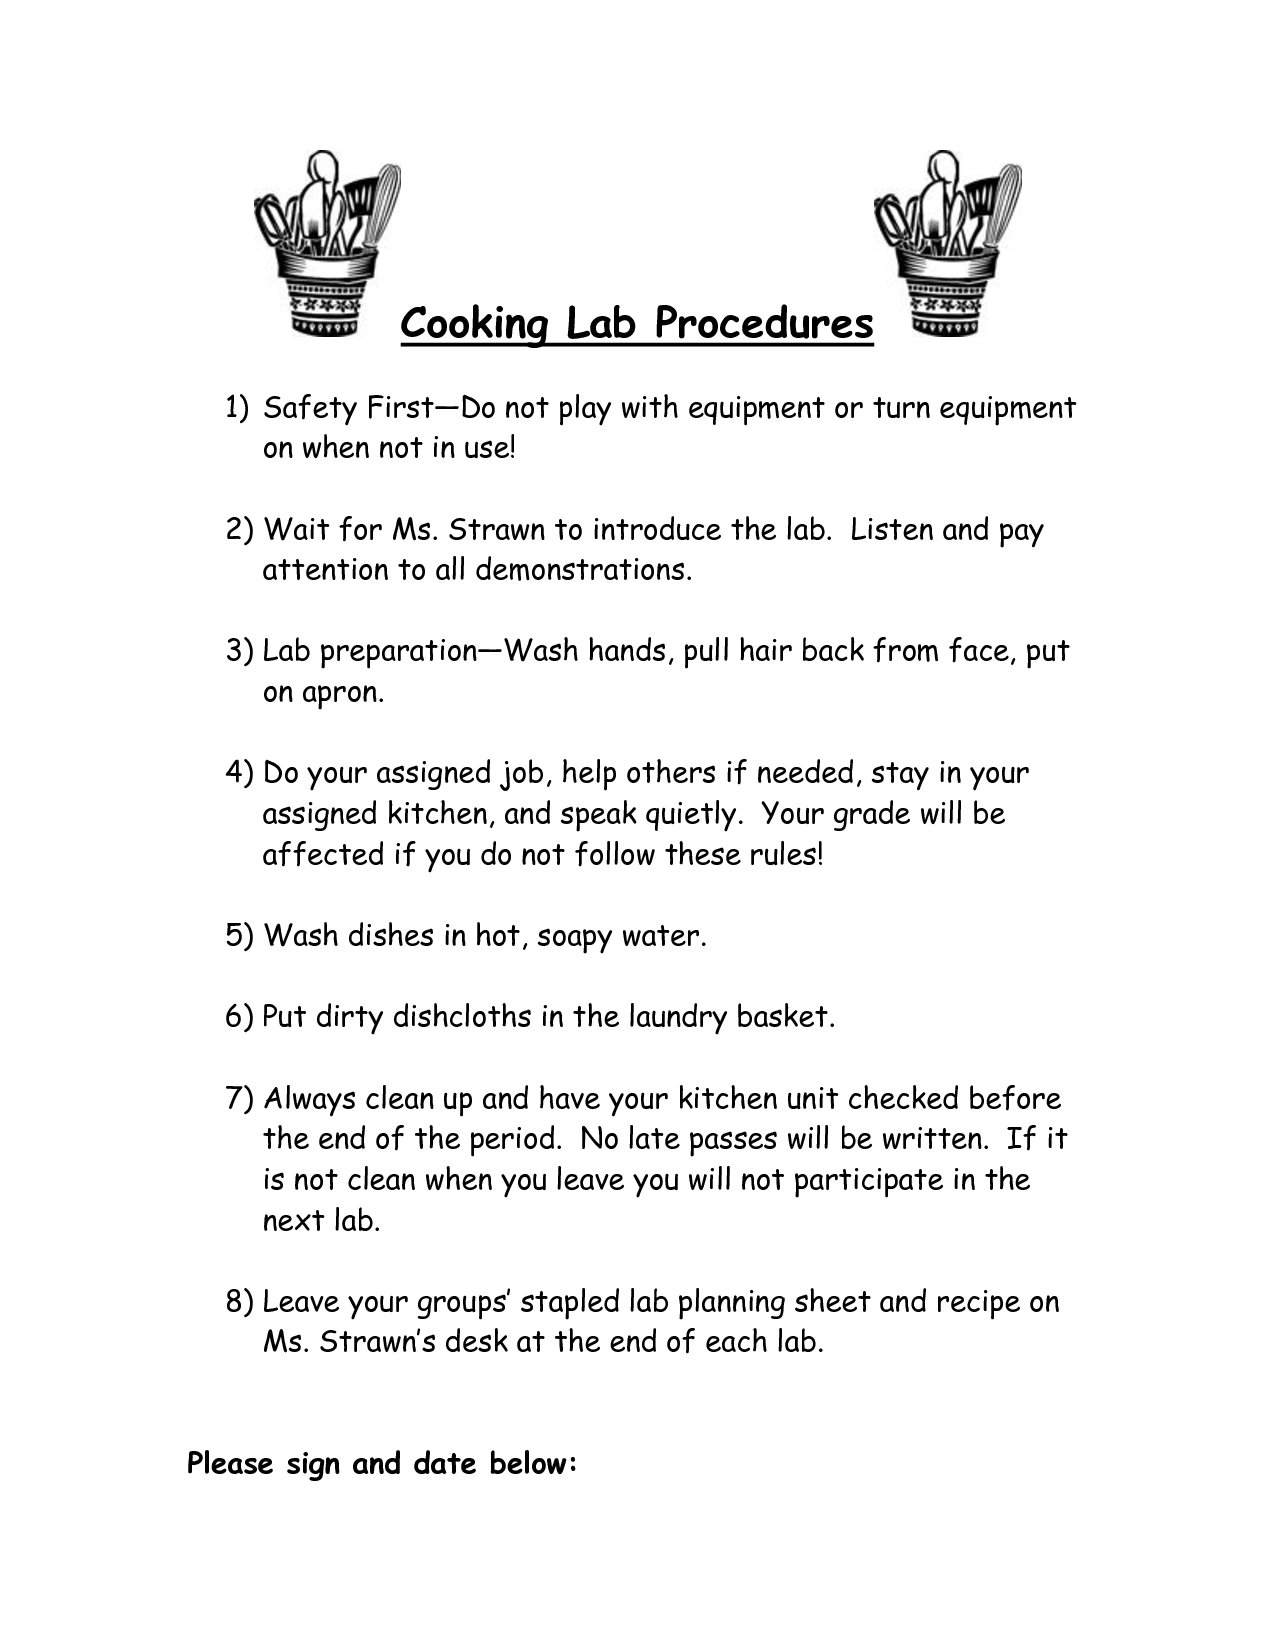 Kitchen Safety Rules Worksheet